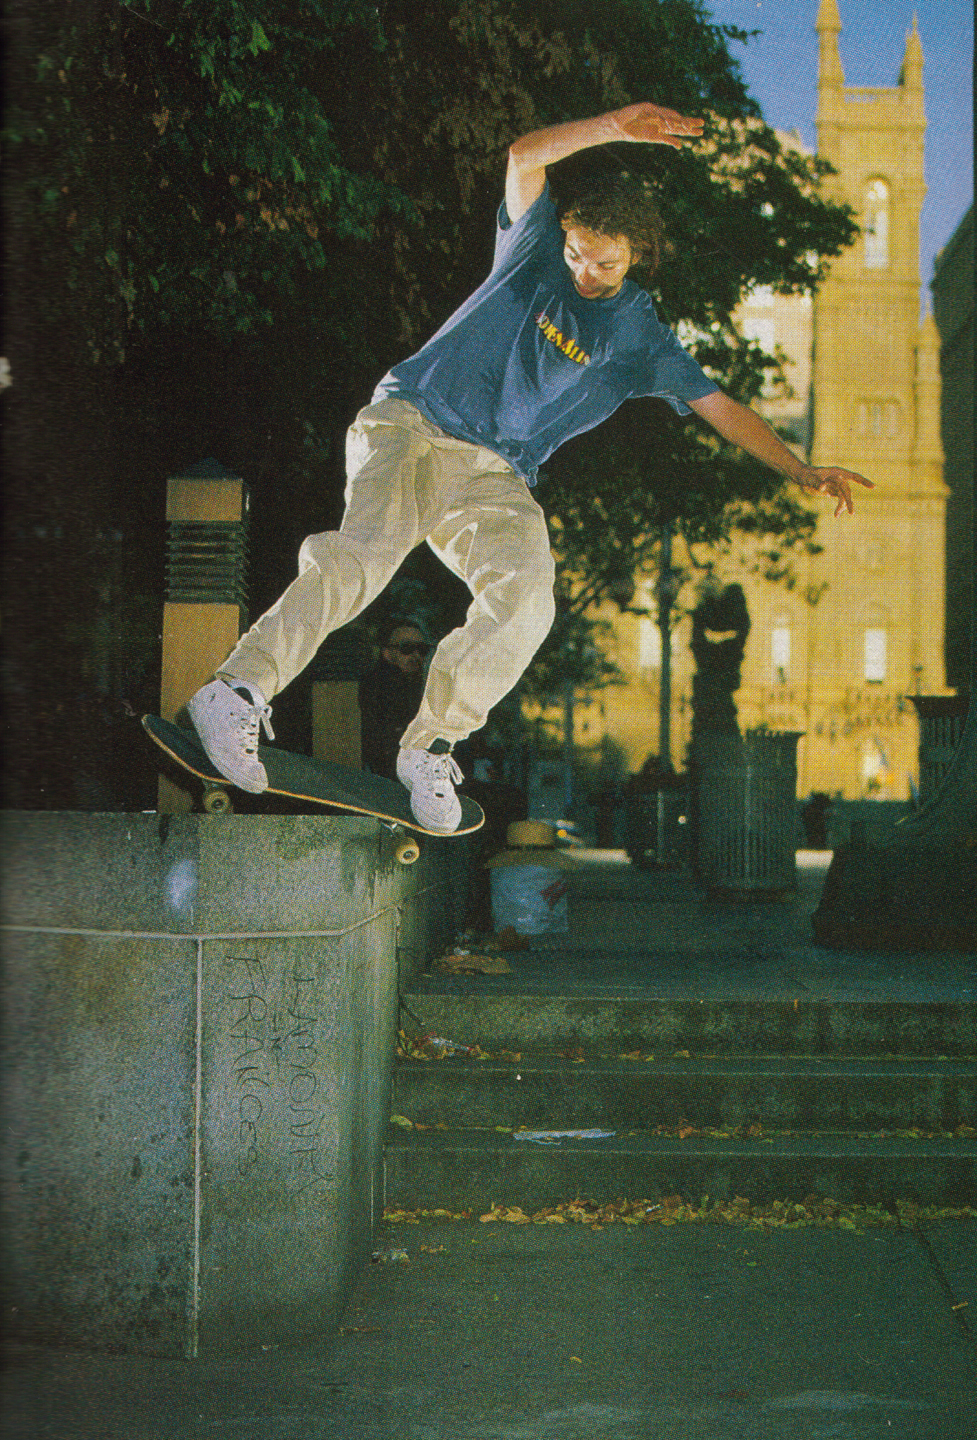 Raw. RIP to a pioneer, a dude who helped skating on the East Coast become what it is. Source:  Chrome Ball